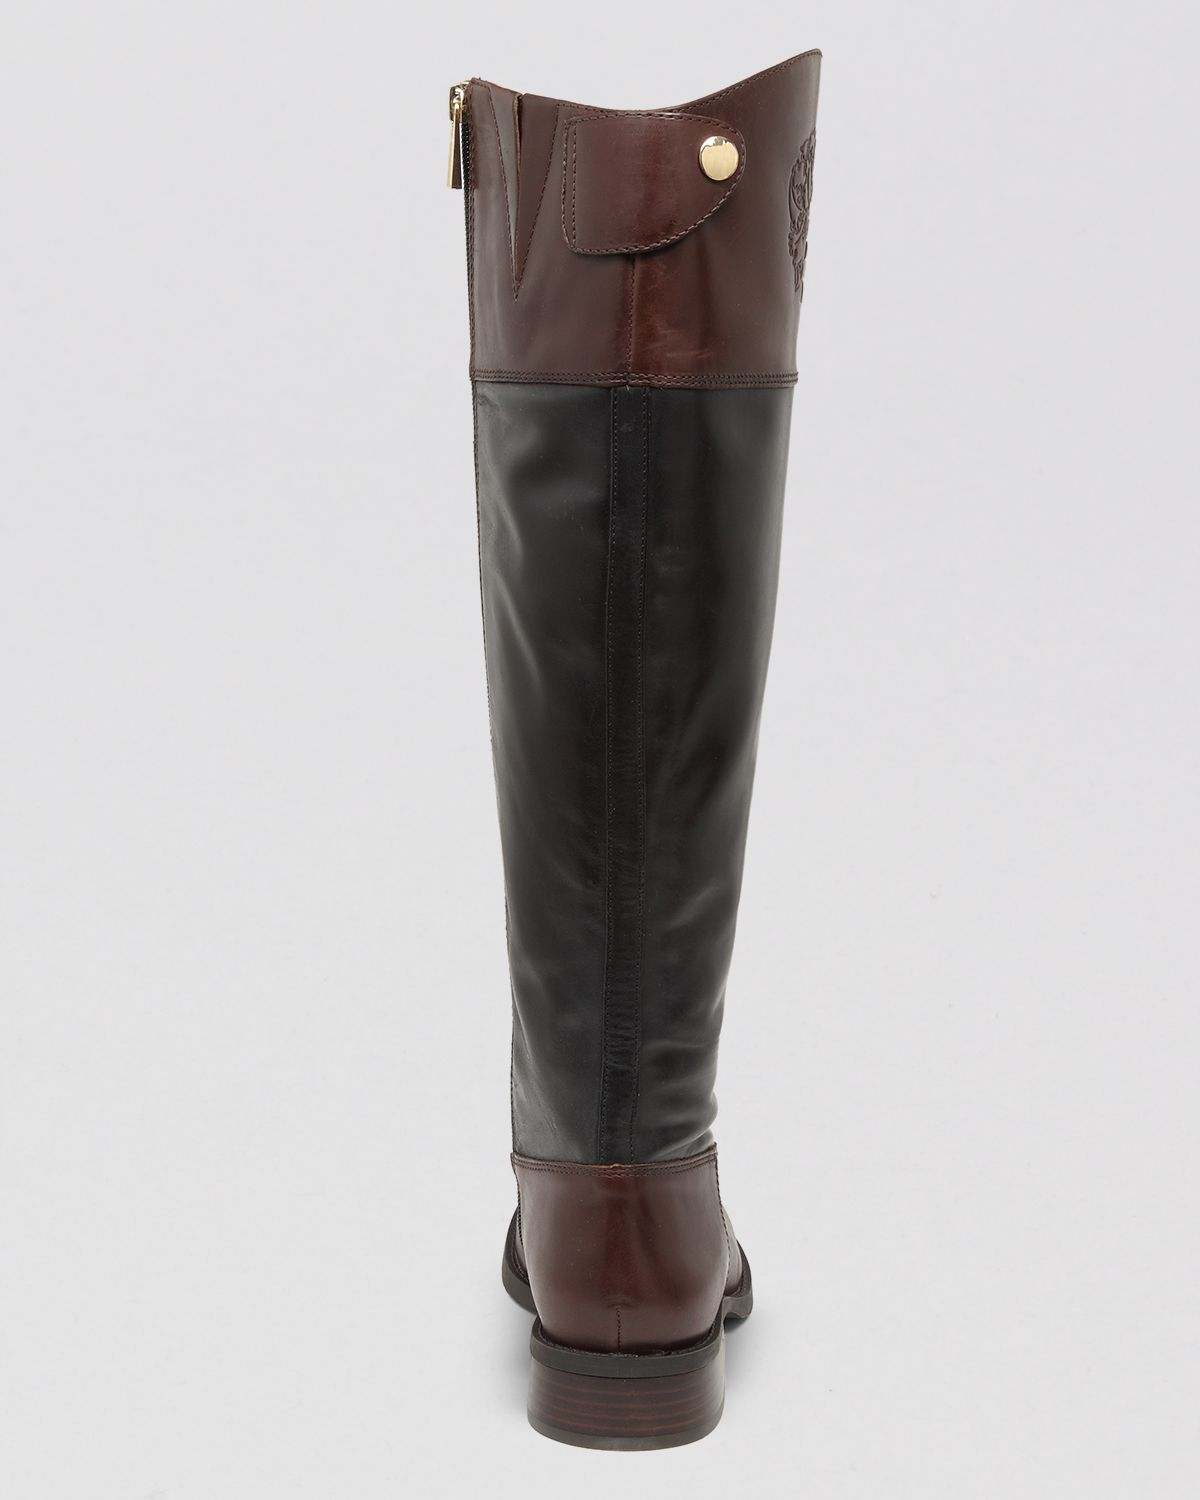 Vince Camuto Riding Boots - Fabina in Black